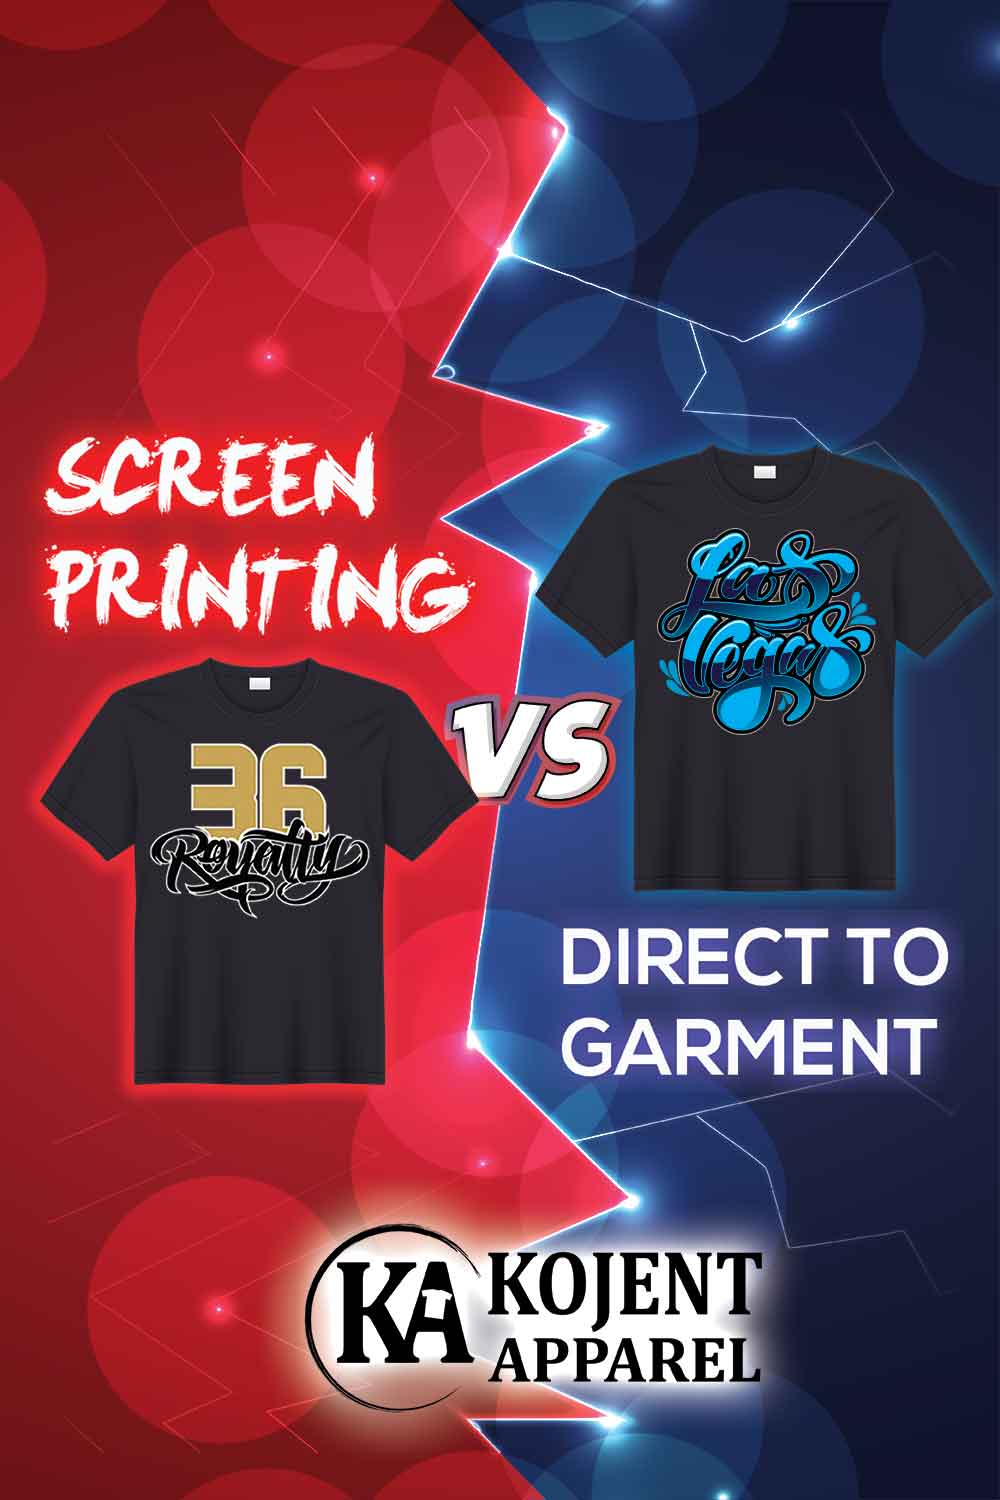 Direct To Garment (DTG) Vs Screen Printing